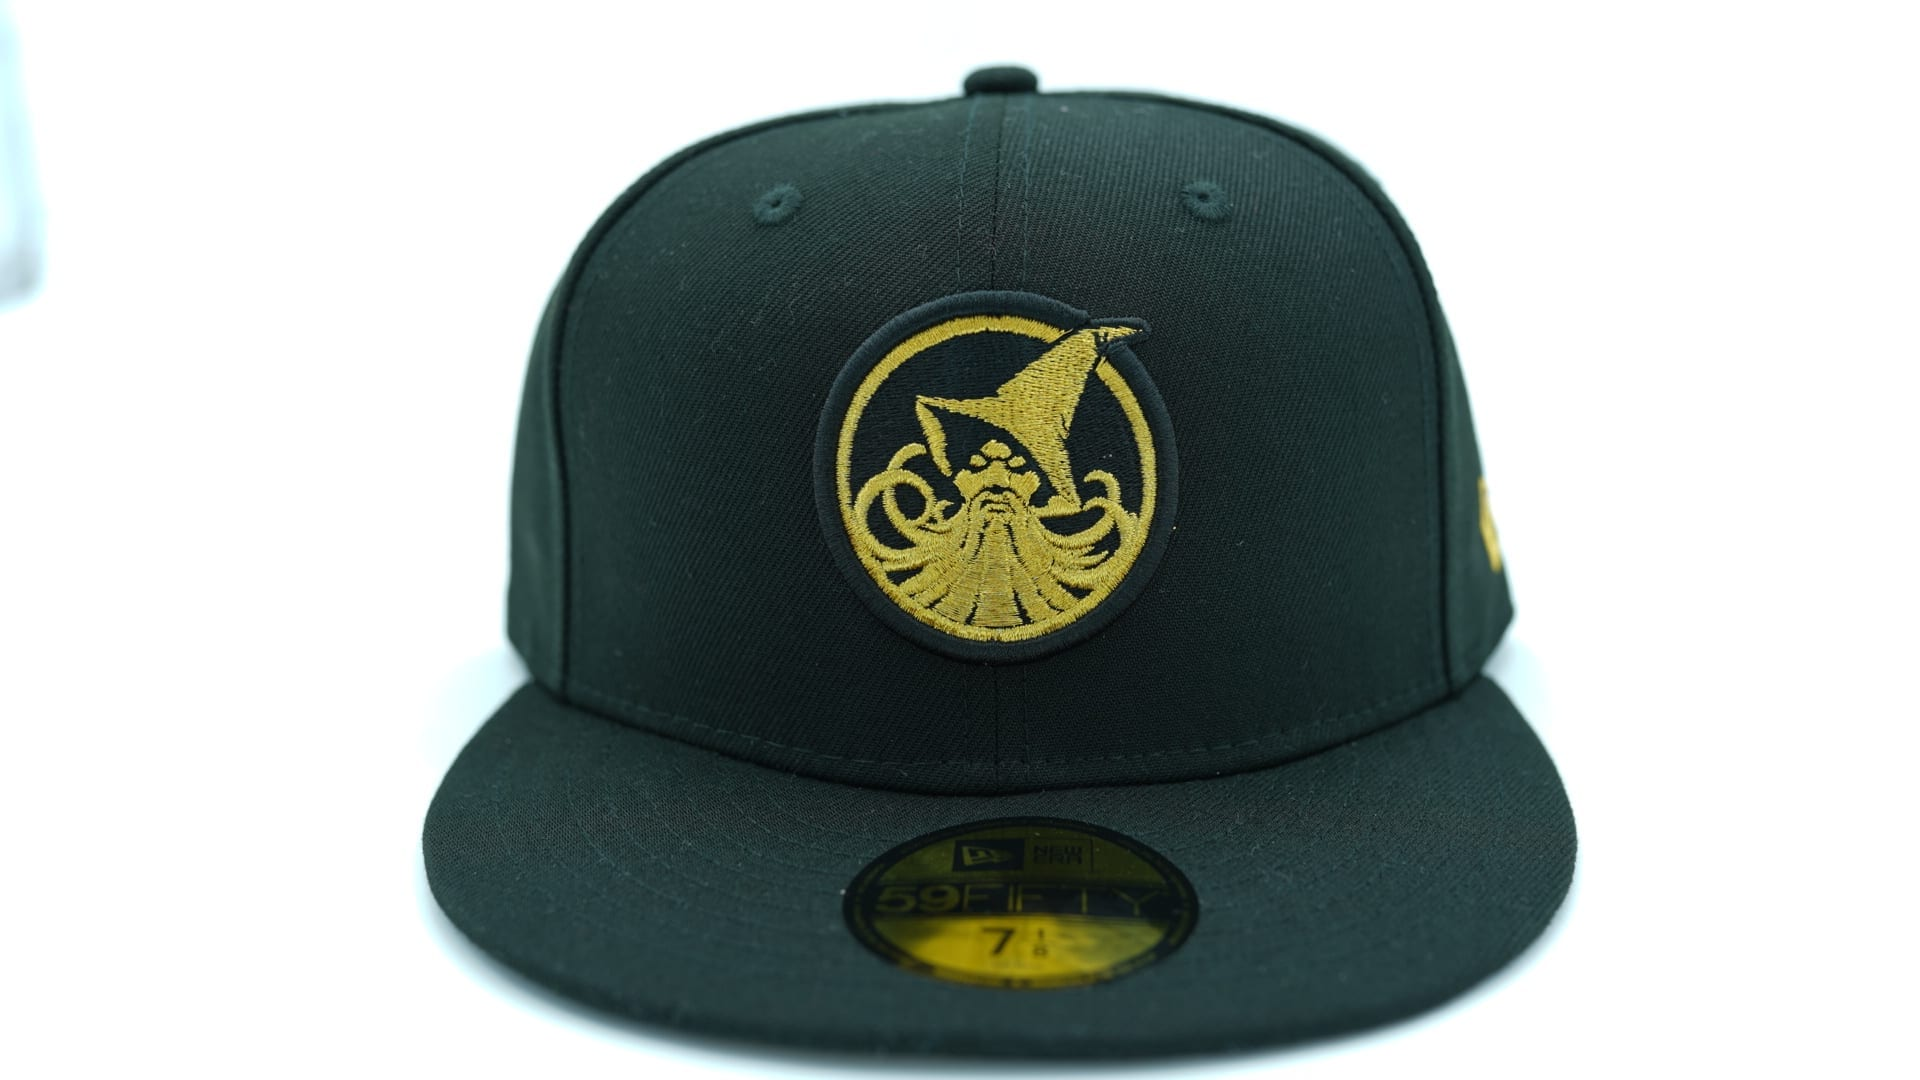 666353e3ba53a7 marvin the martian jf custom 59fifty fitted baseball cap looney tunes new  era